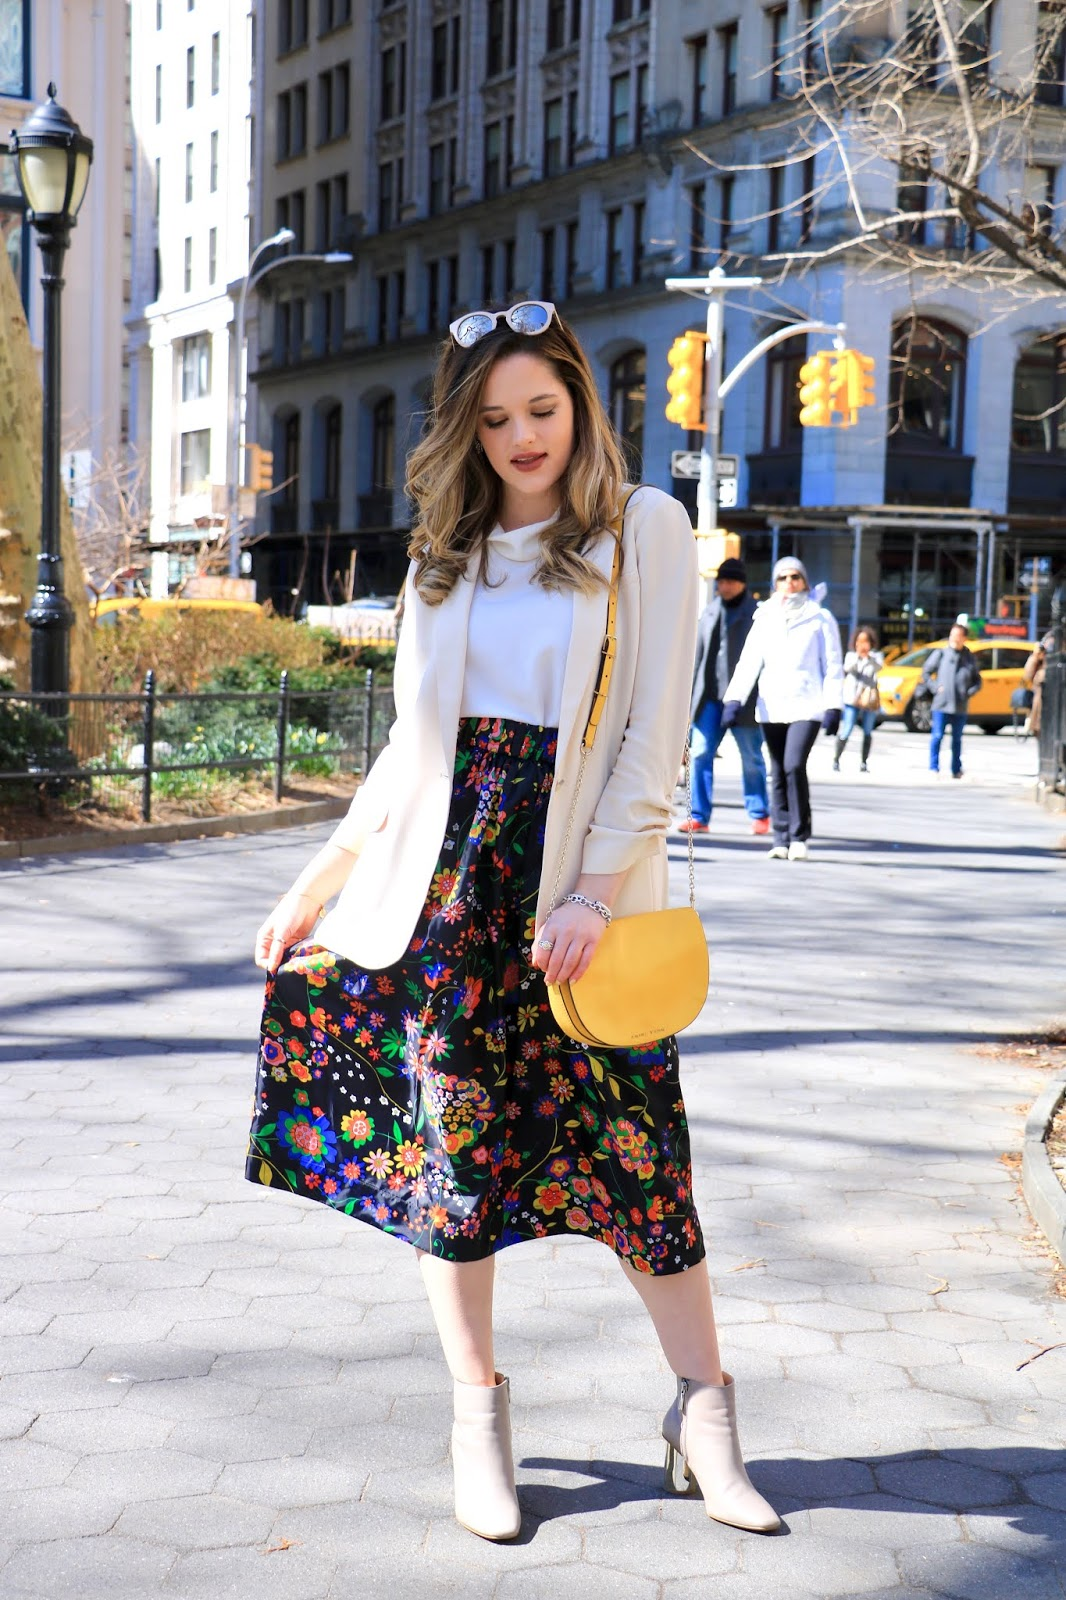 Nyc fashion blogger Kathleen Harper's 2019 spring fashion trends